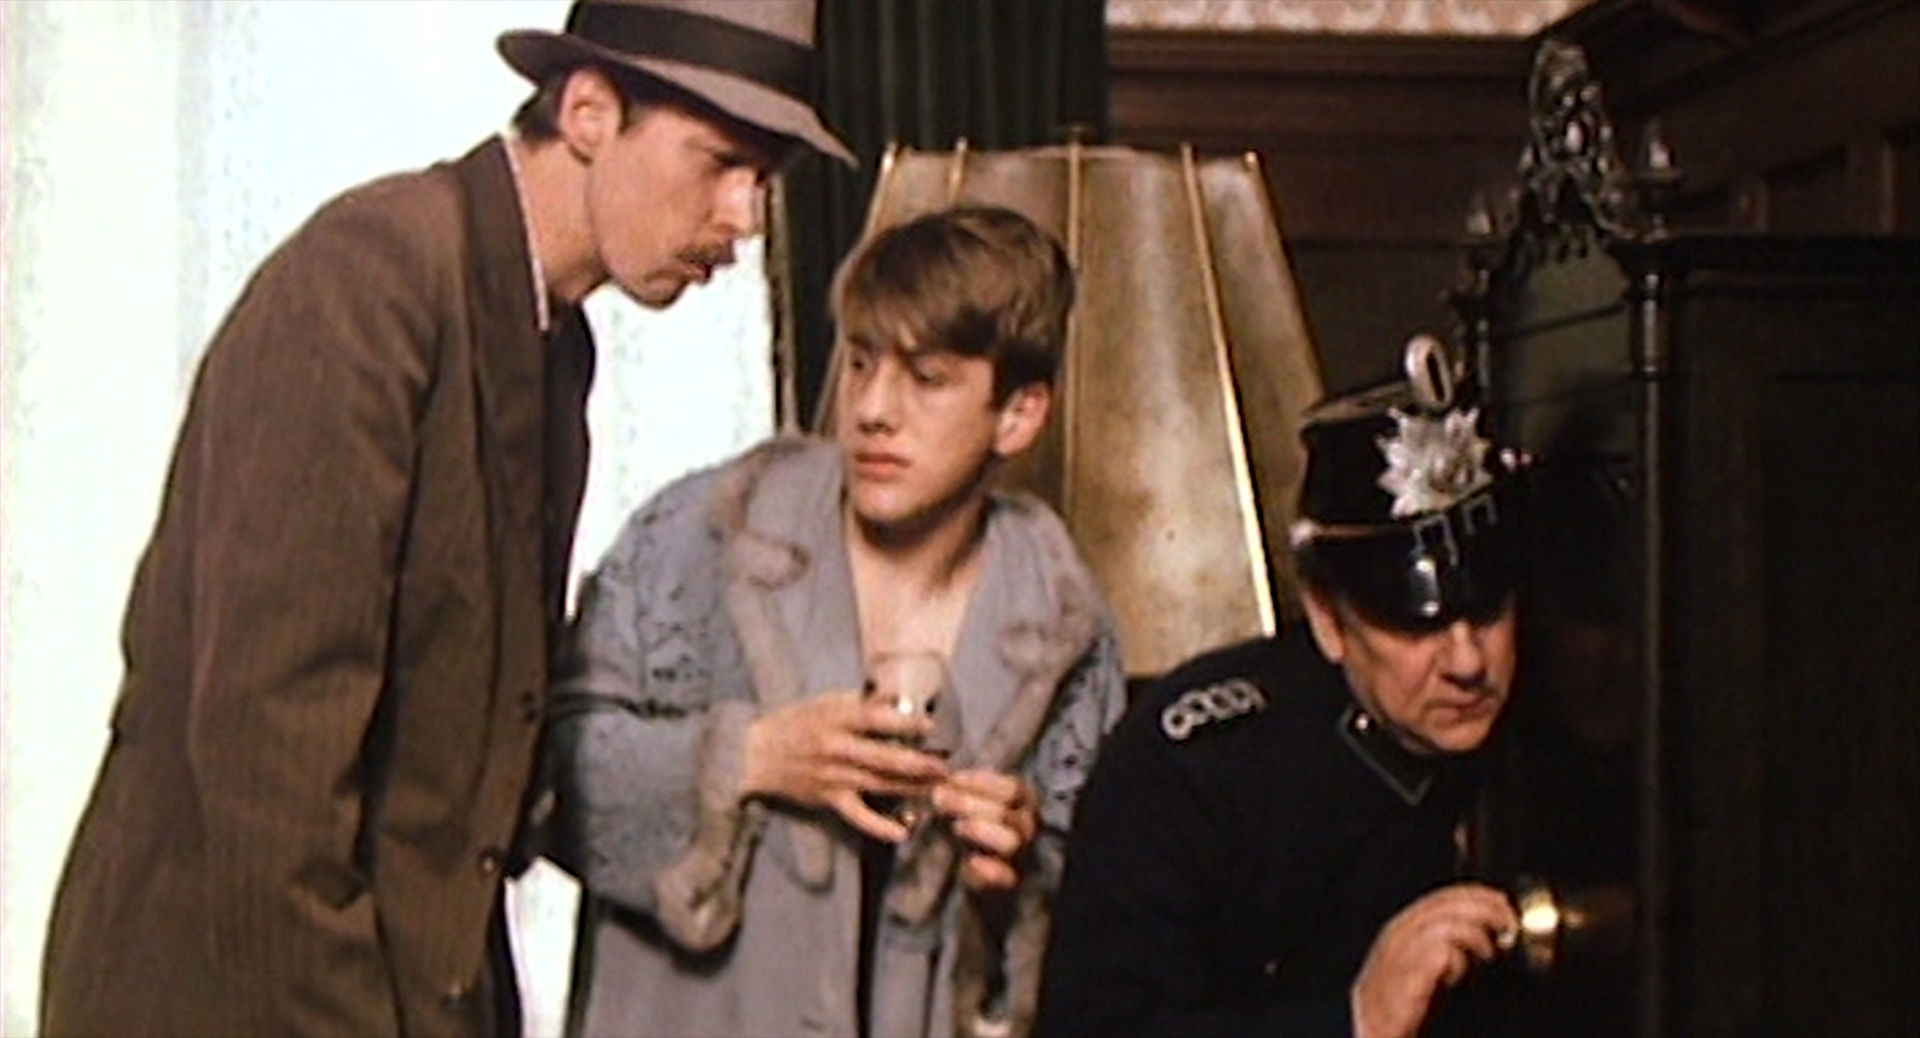 Gottfried Vollmer (Harry), Christoph Waltz (Ede), Heinz Diesing (Polizist)